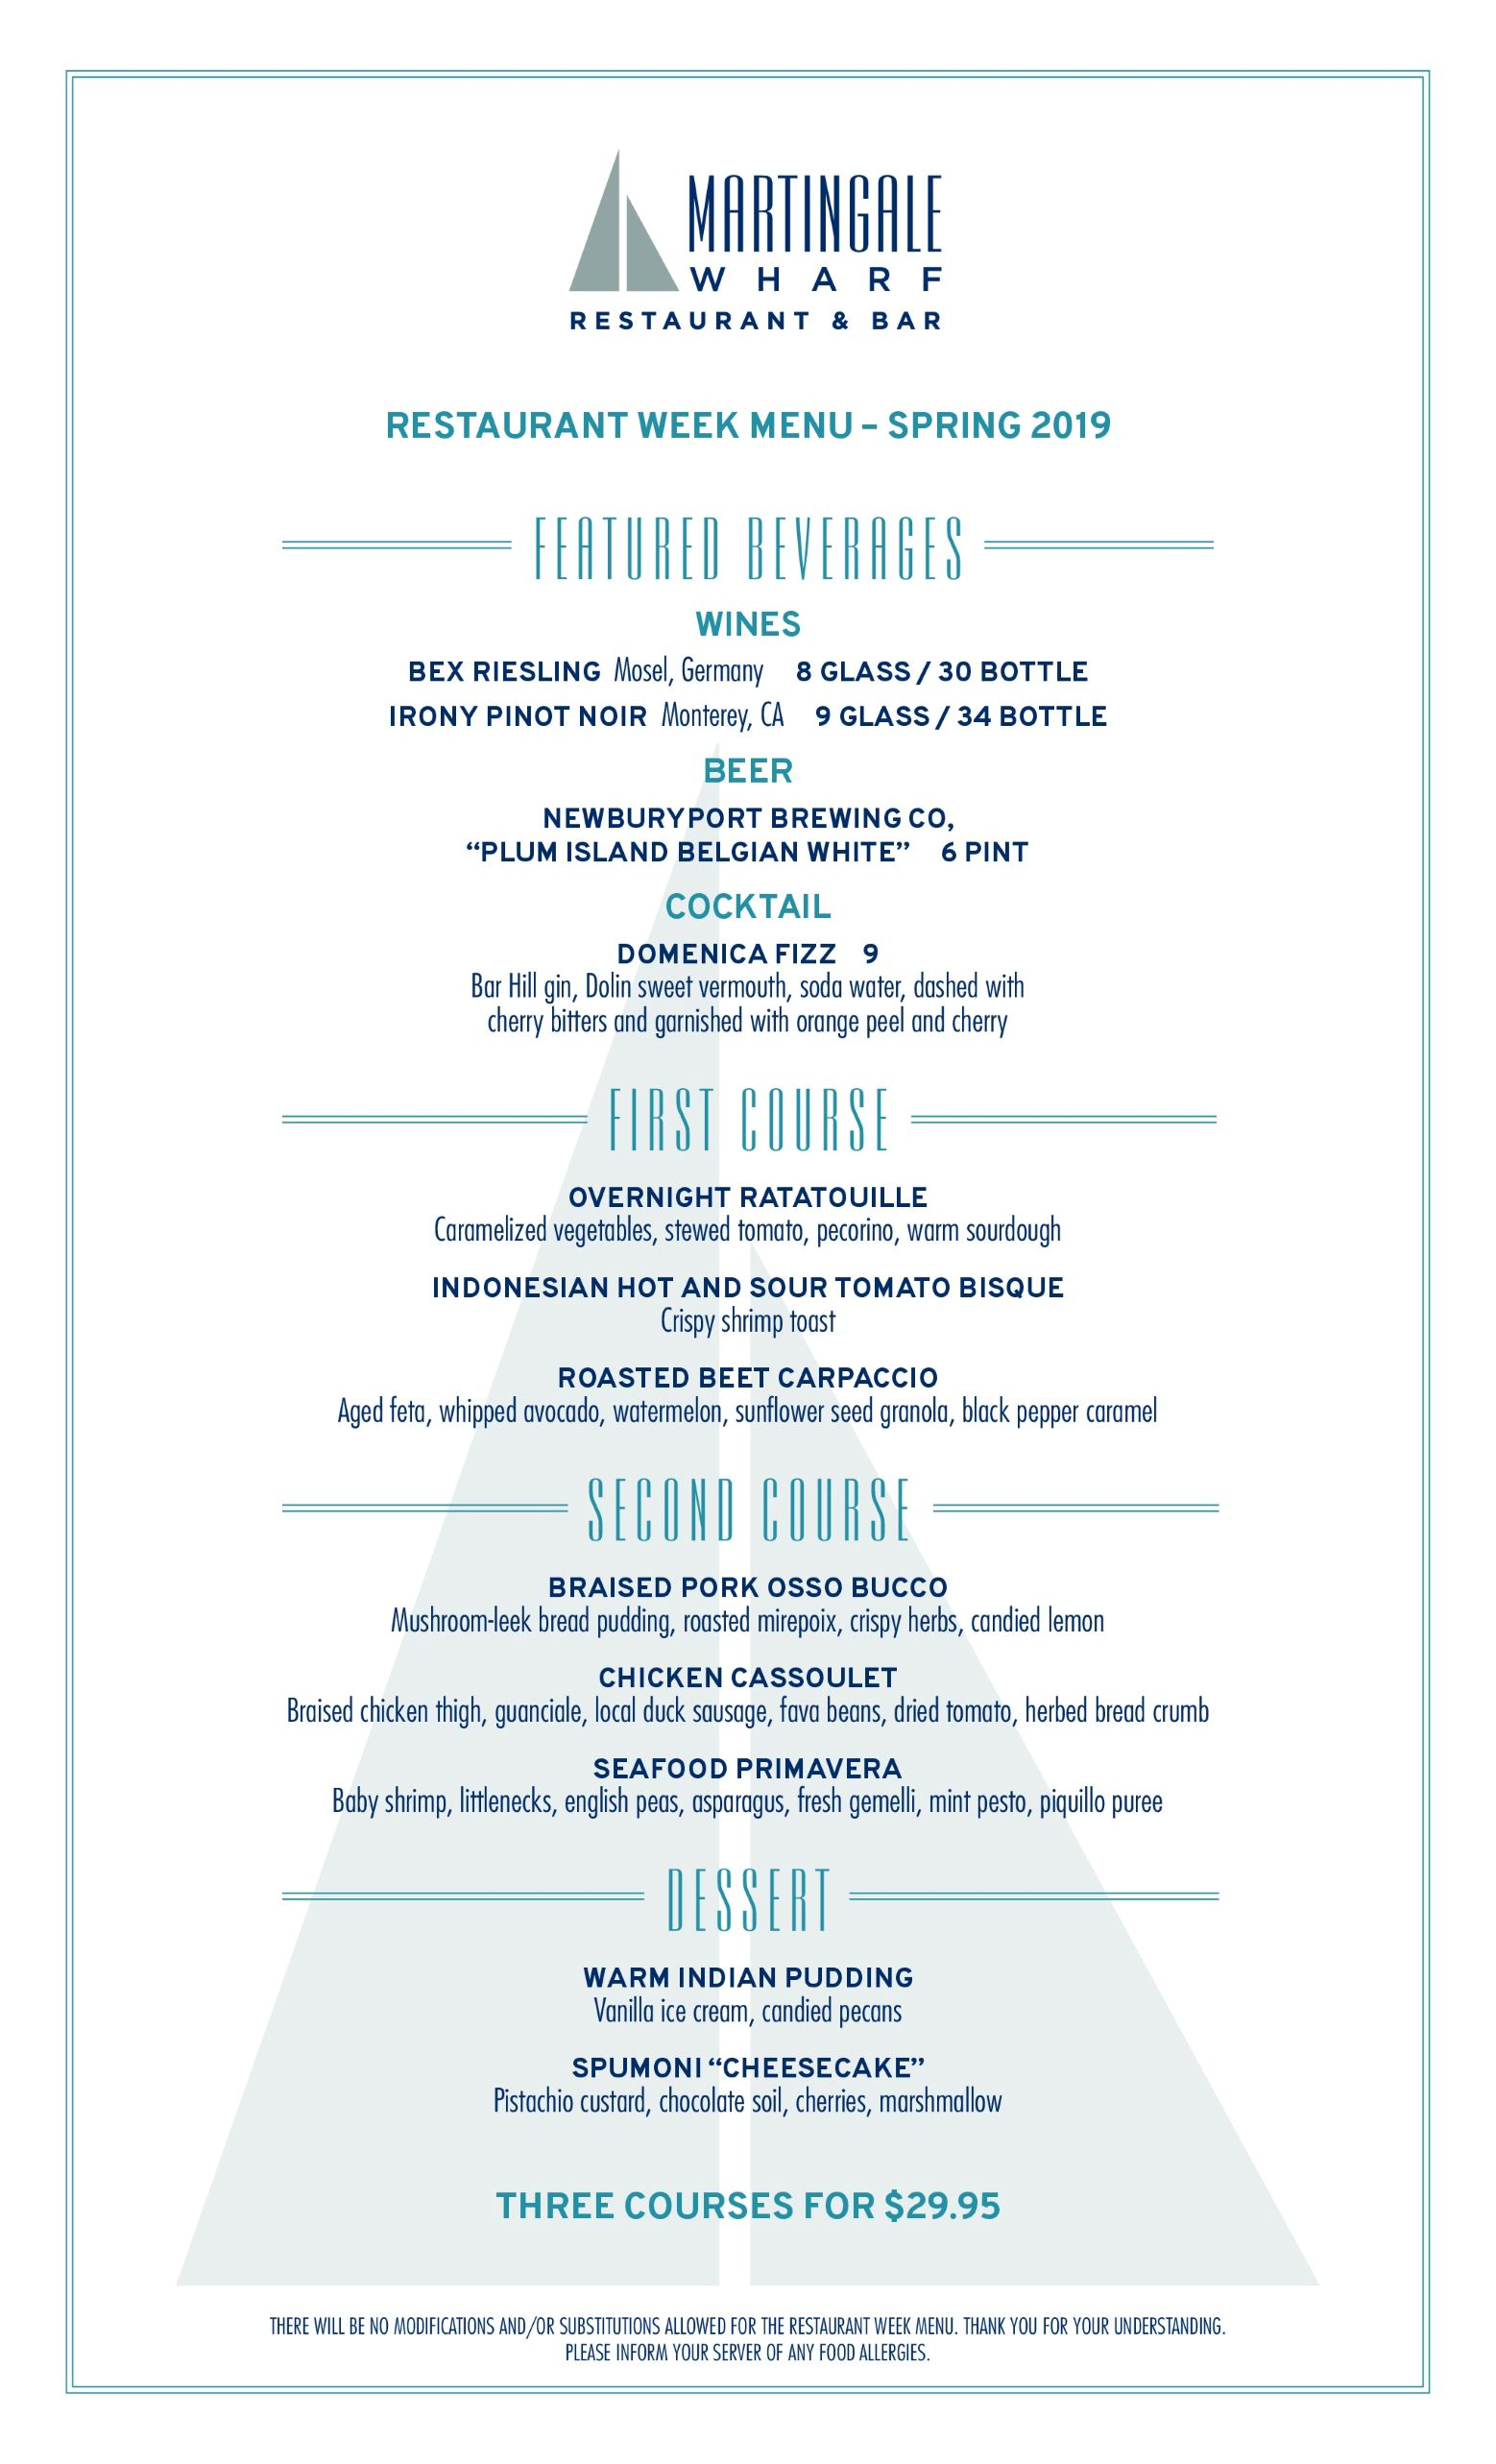 Restaurant Week Spring 2019 Menu.jpg